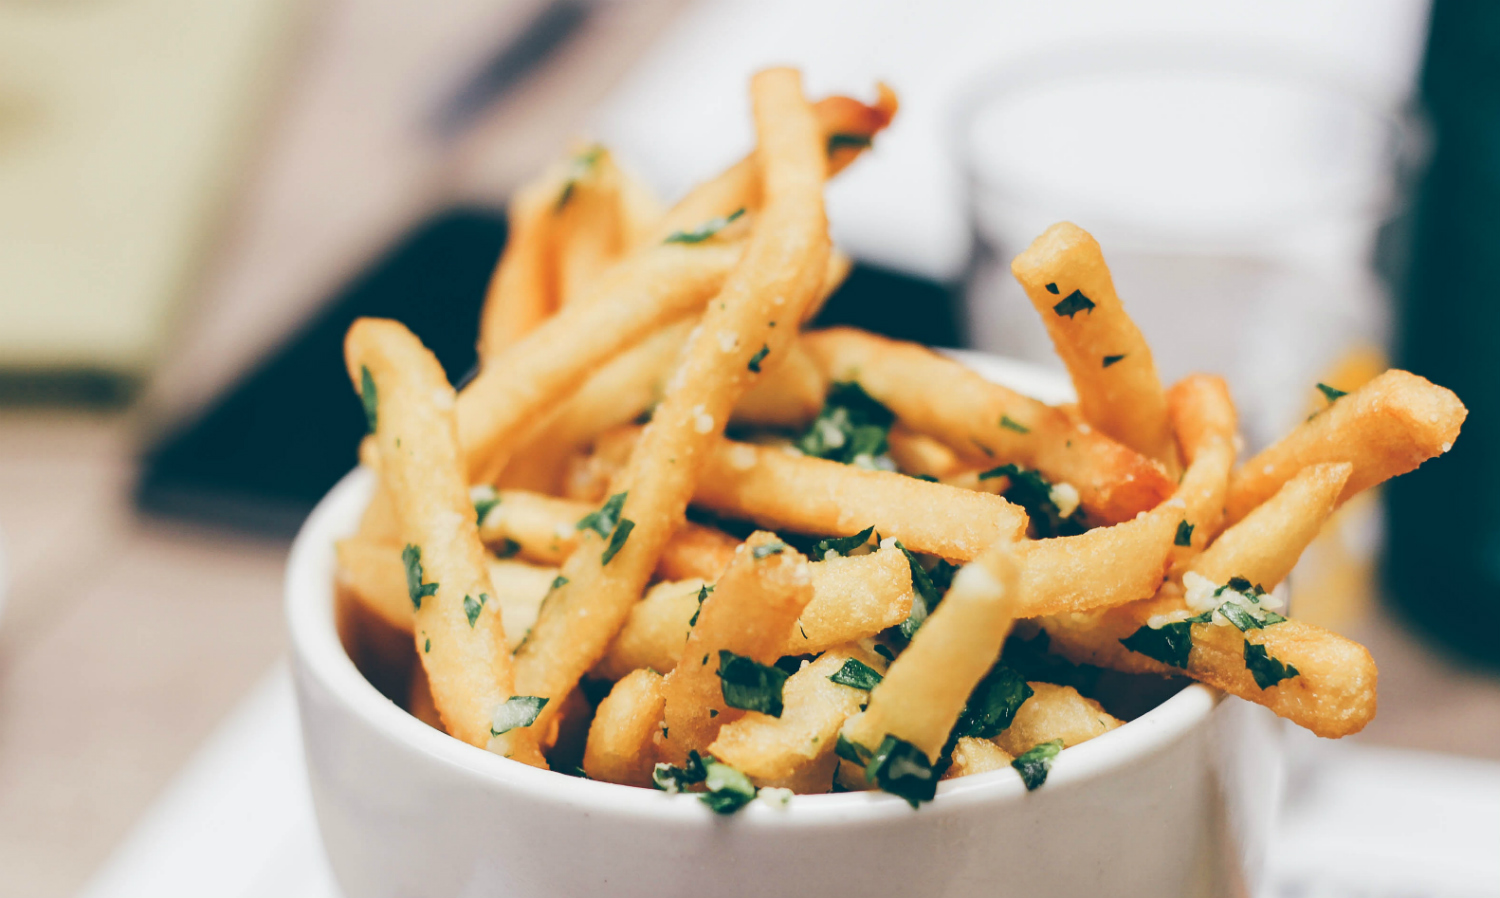 Friday the 13th July is French Fries Day